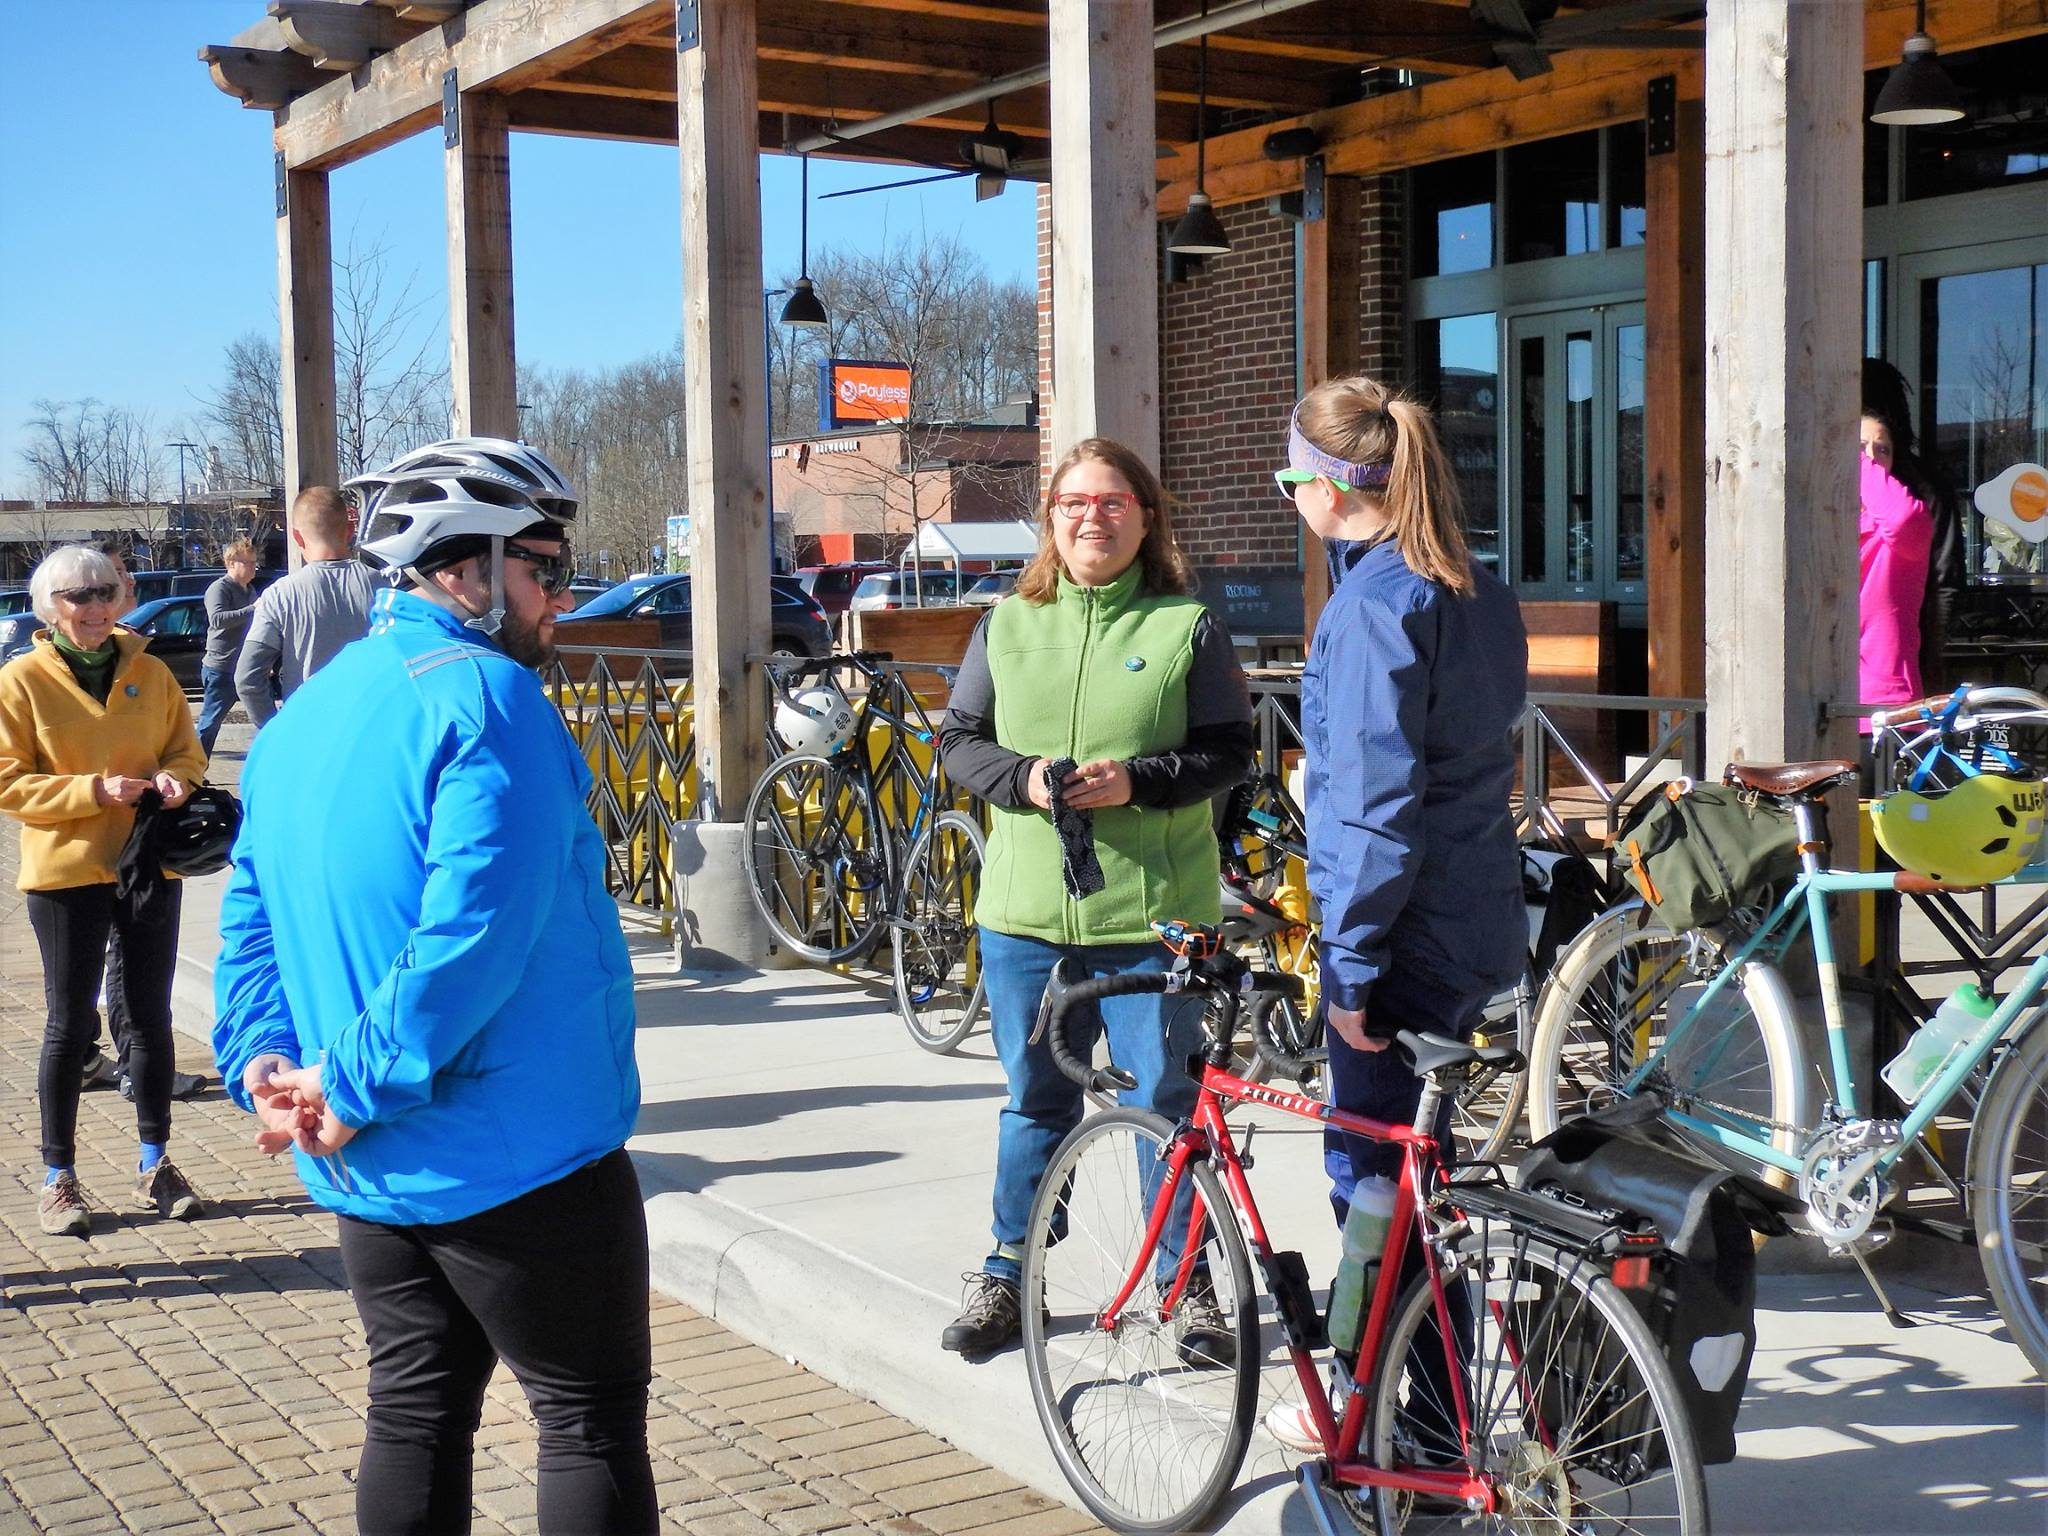 Ride leader Rahel Babb (in green) greets people as they arrive to Whole Foods Market. Photo credit: Keith 'Lugs' Mayton